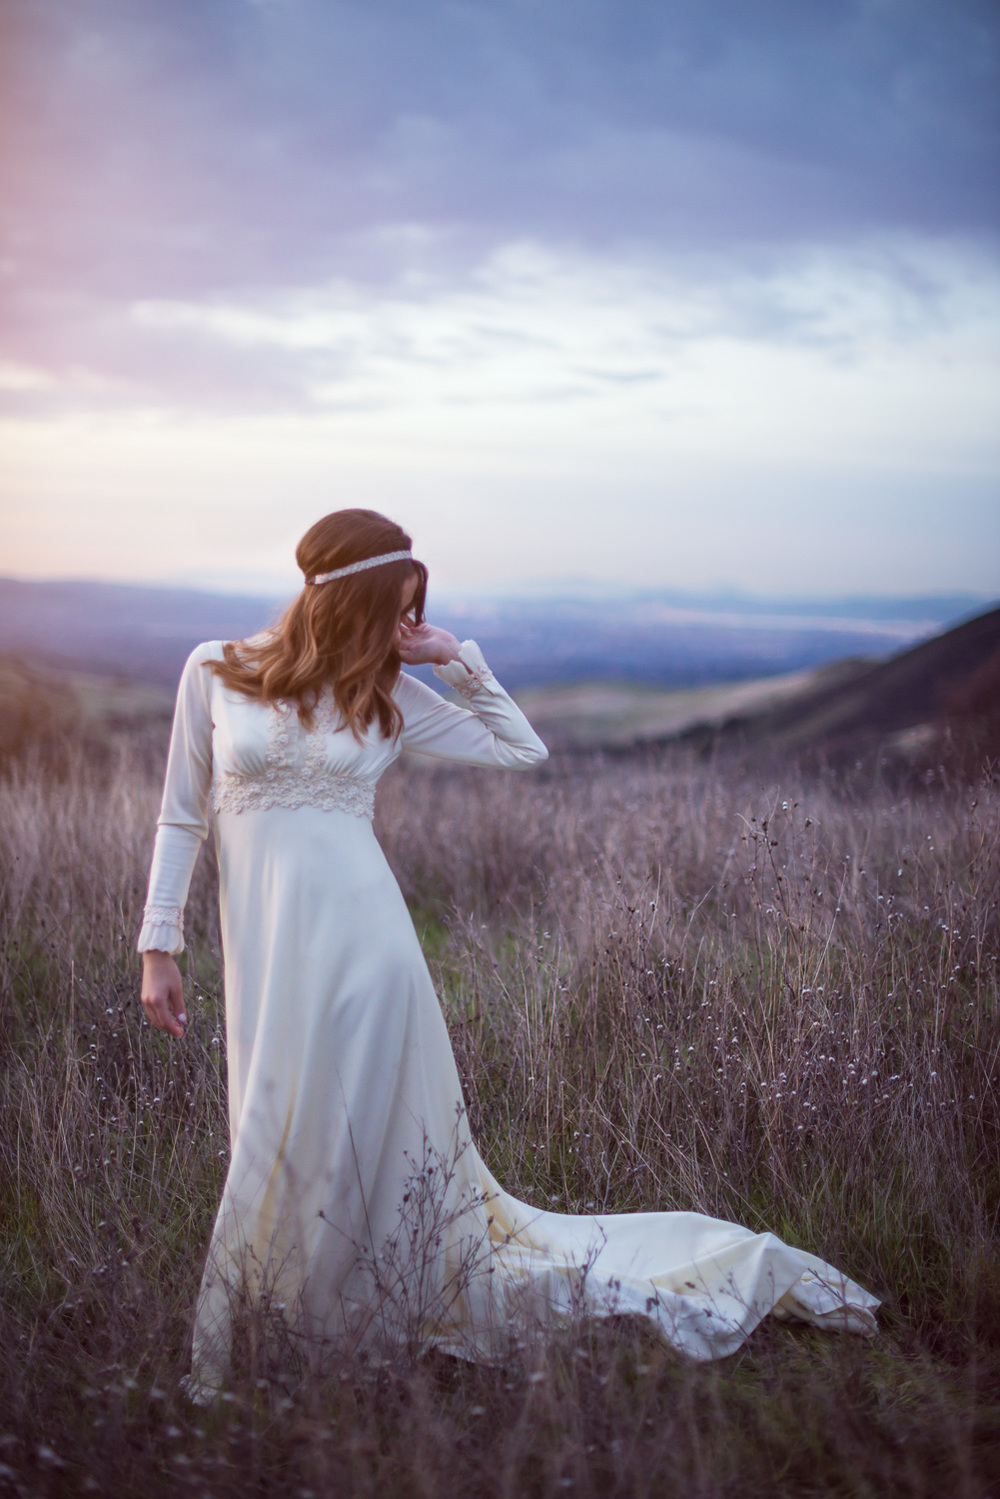 Whimsical Portraiture // Ashley Petersen Photography